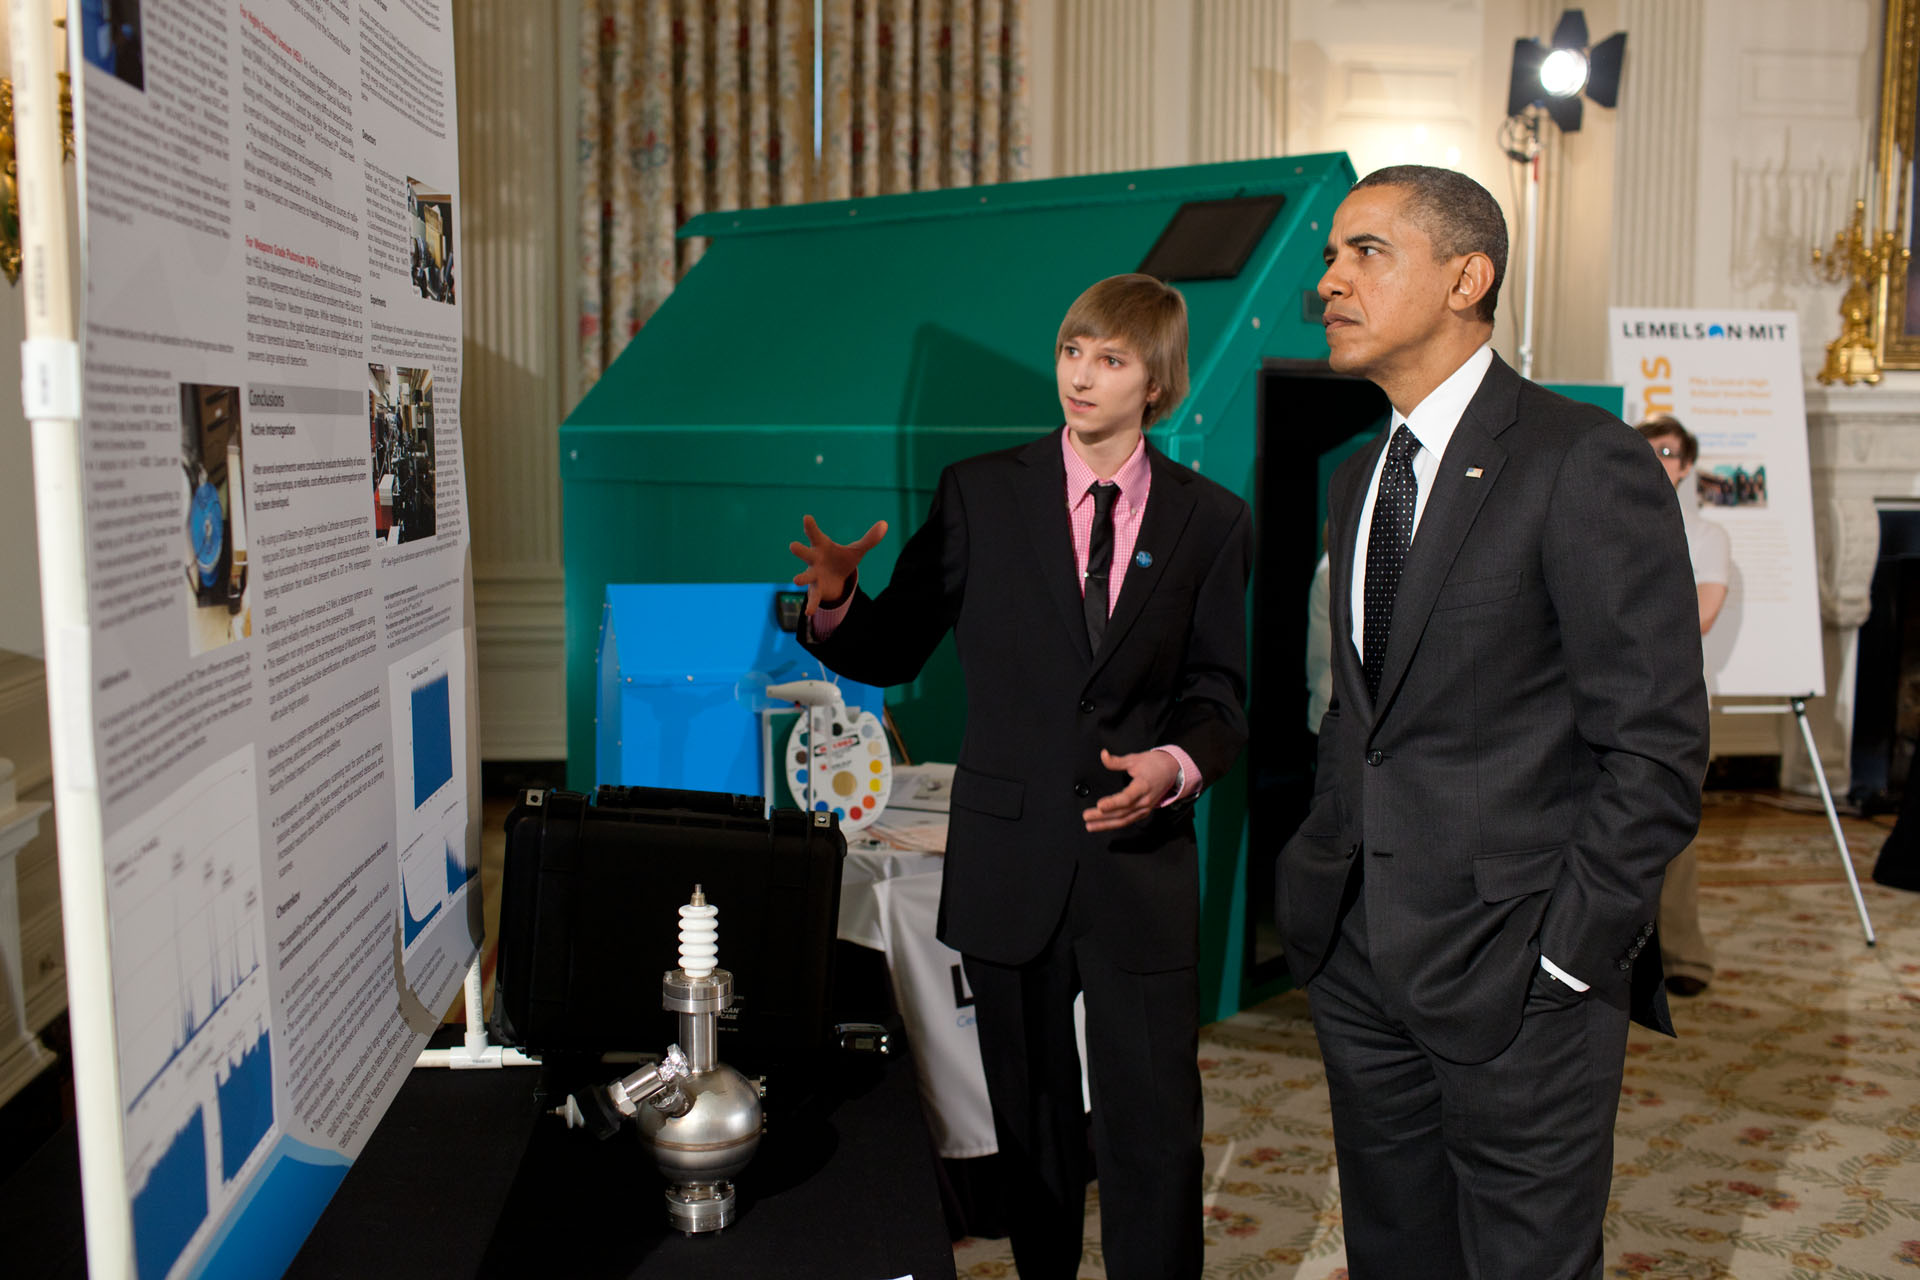 President Obama Speaks to Taylor Wilson